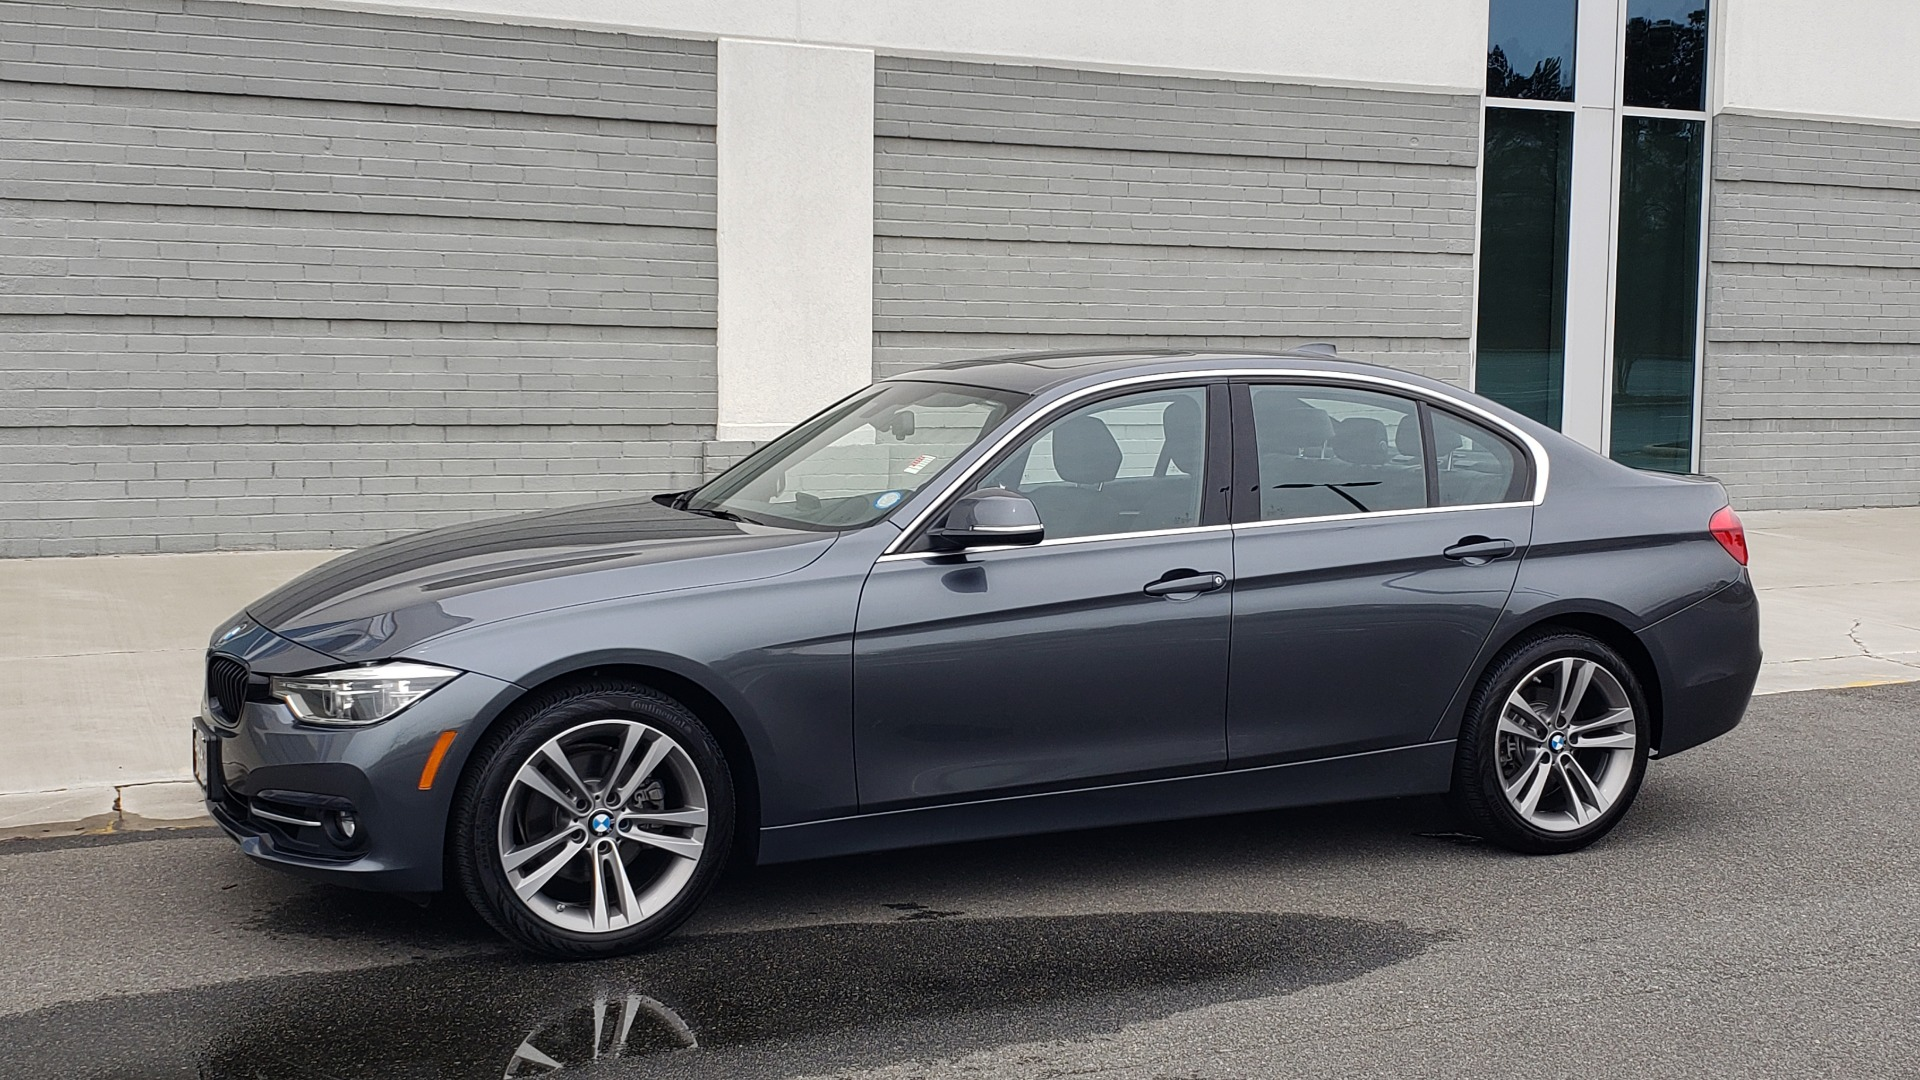 Used 2018 BMW 3 SERIES 330I XDRIVE PREMIUM / CONV PKG NAV / BLIND SPOT / HTD STS / REARVIEW for sale $22,695 at Formula Imports in Charlotte NC 28227 7